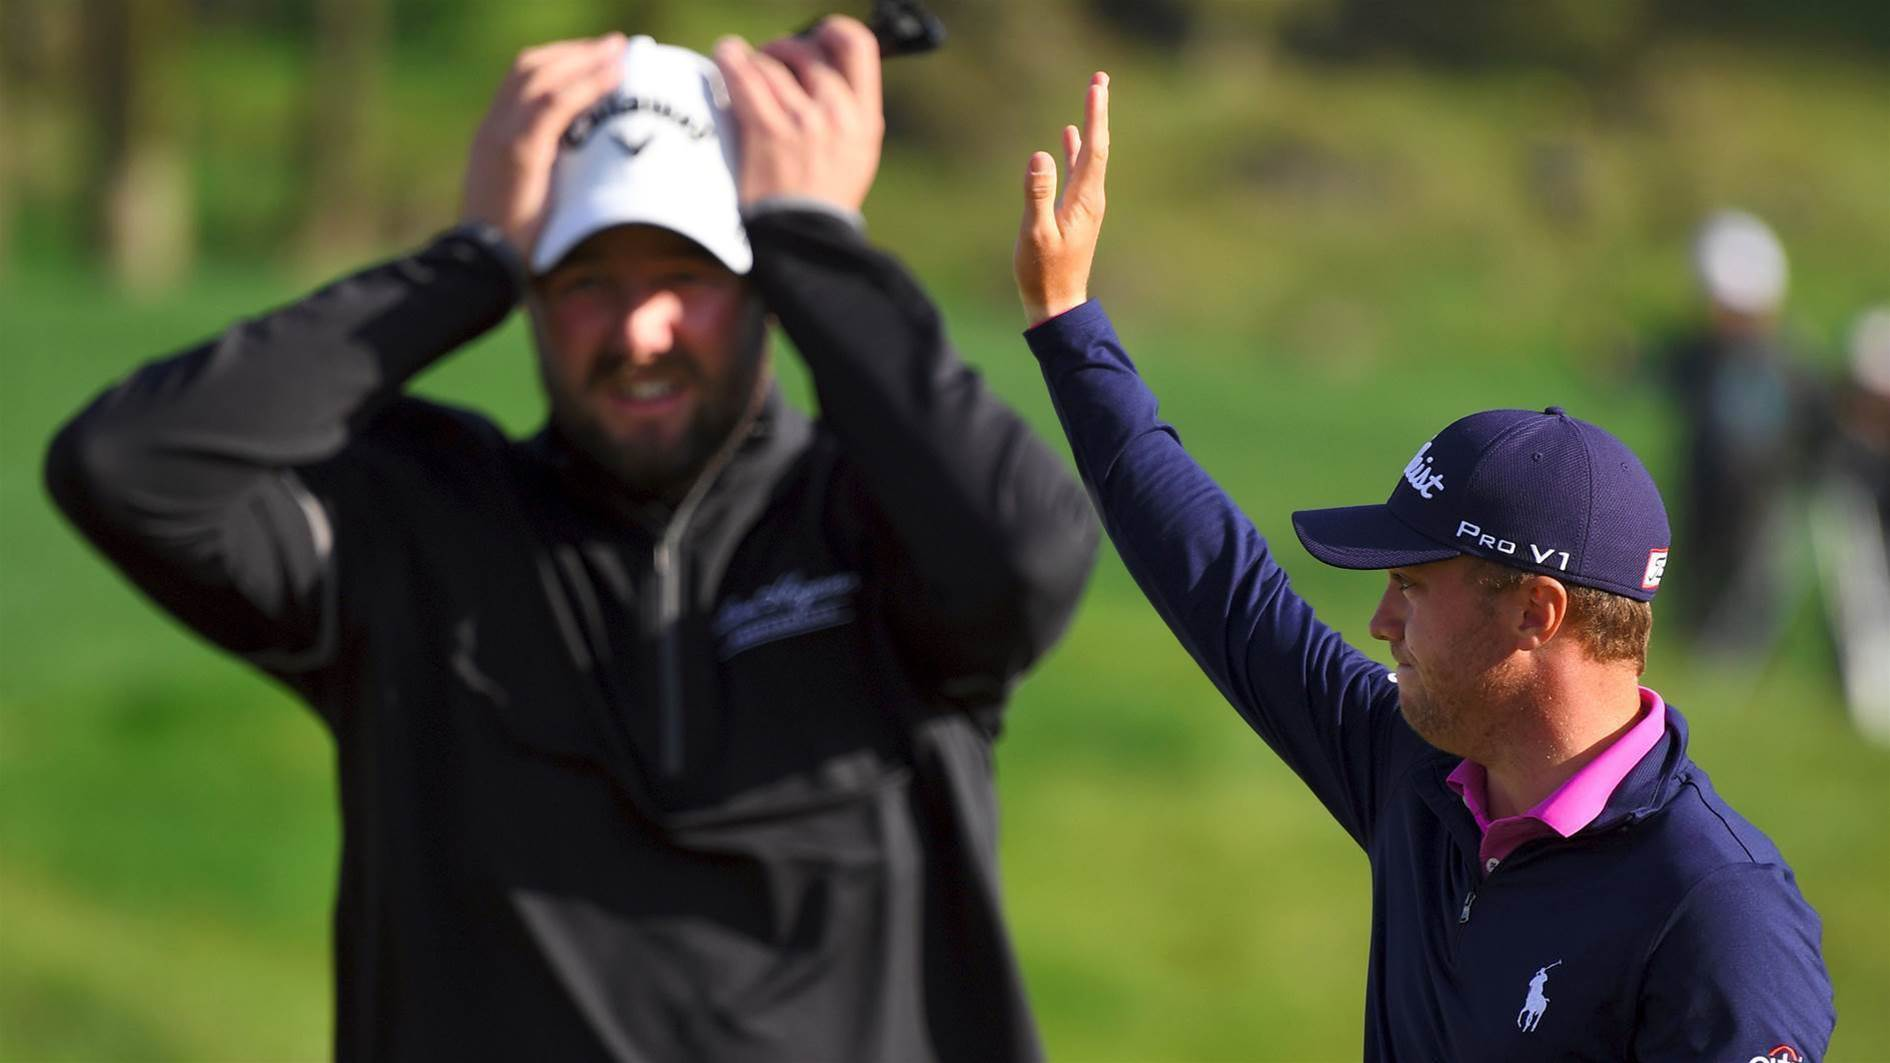 PGA TOUR: Leishman's bid for another win sinks in play-off